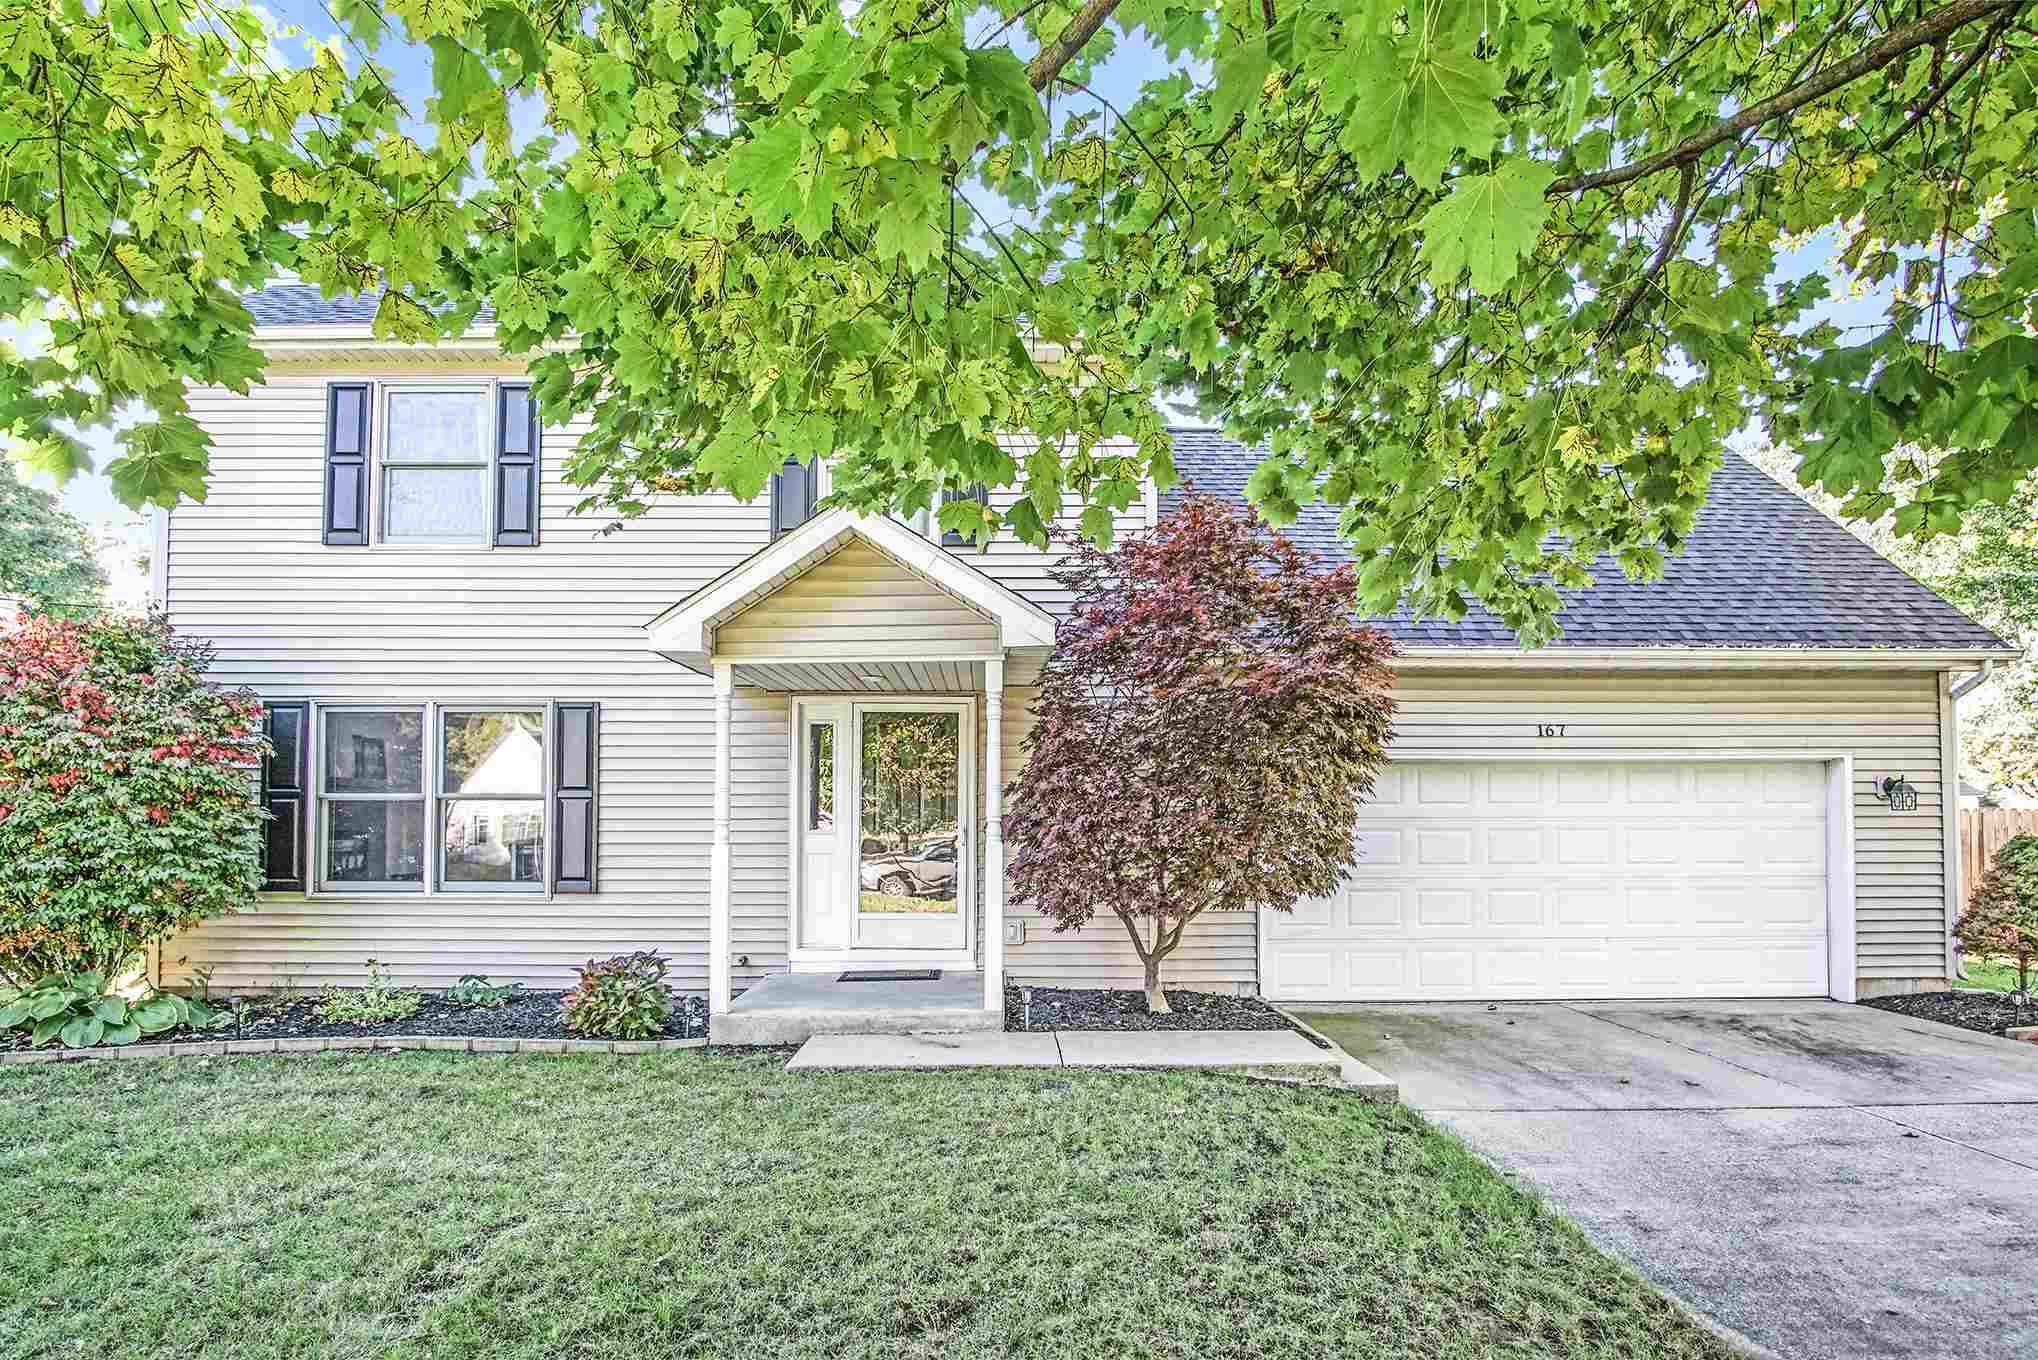 167 St Clair Elkhart, IN 46516